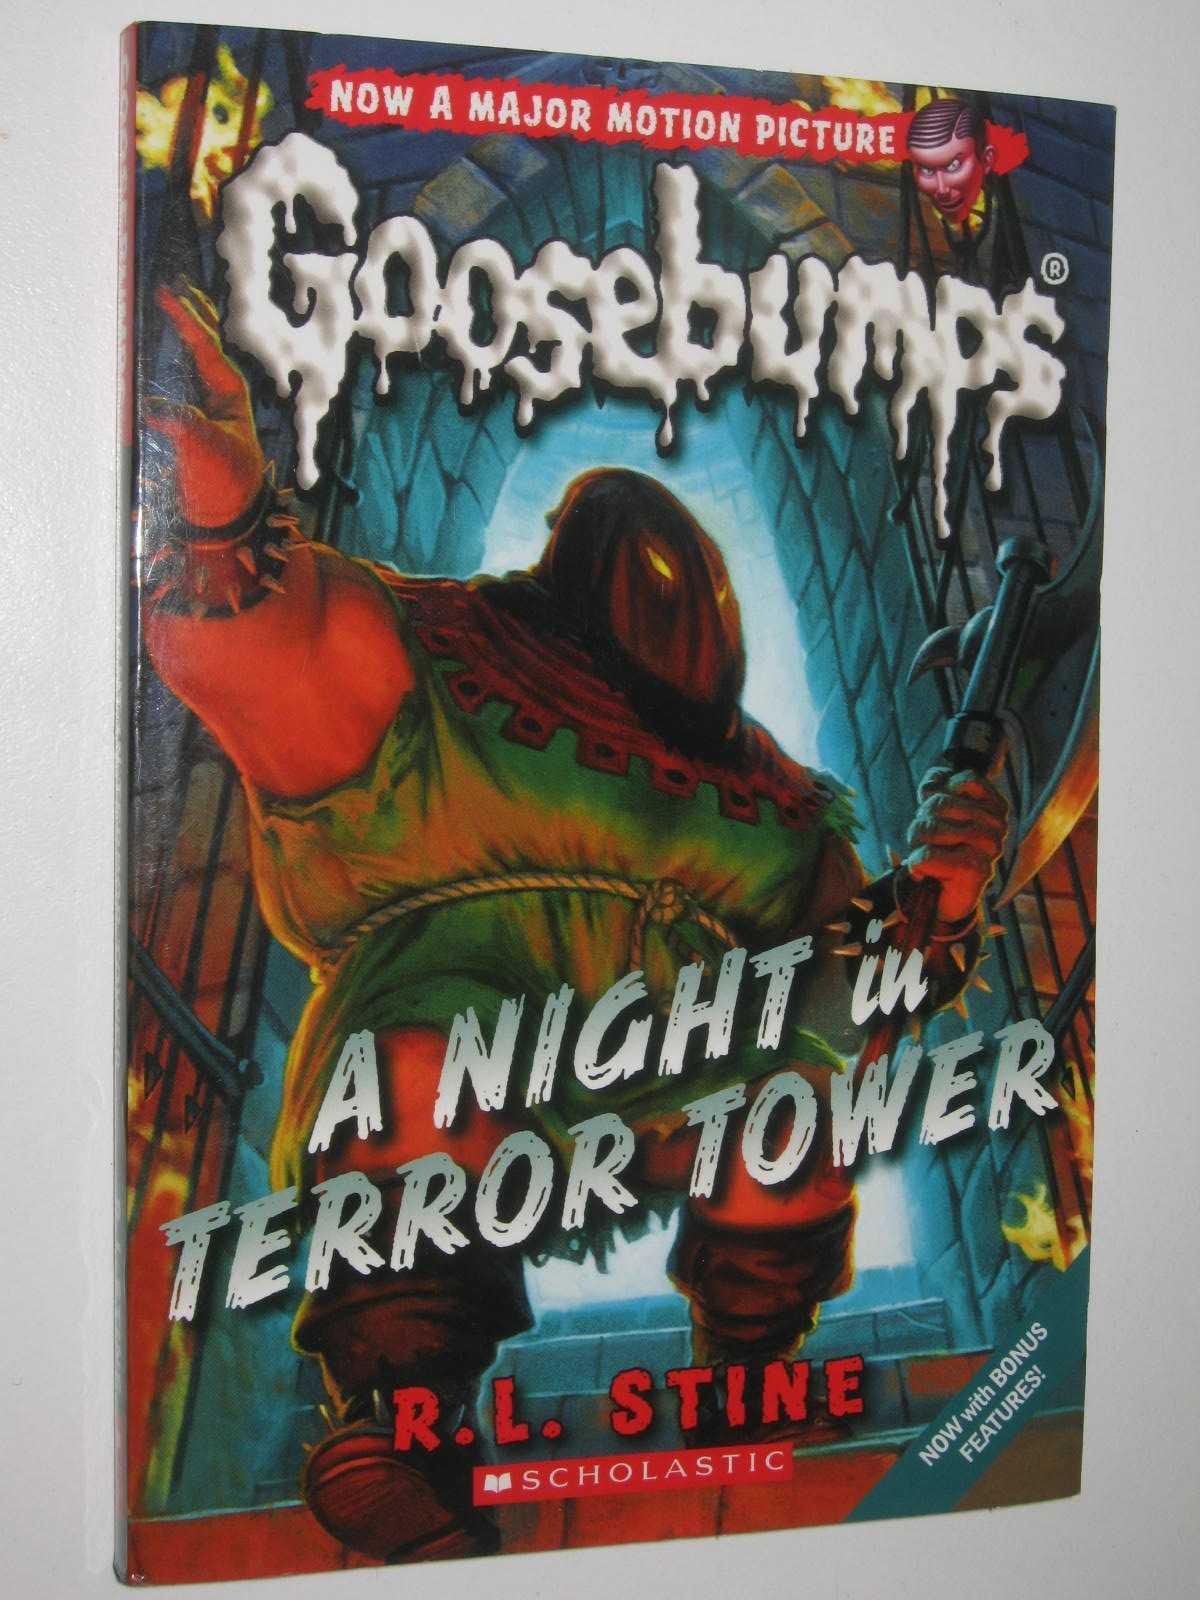 Image for A Night in Terror Tower - Goosebumps Series #12